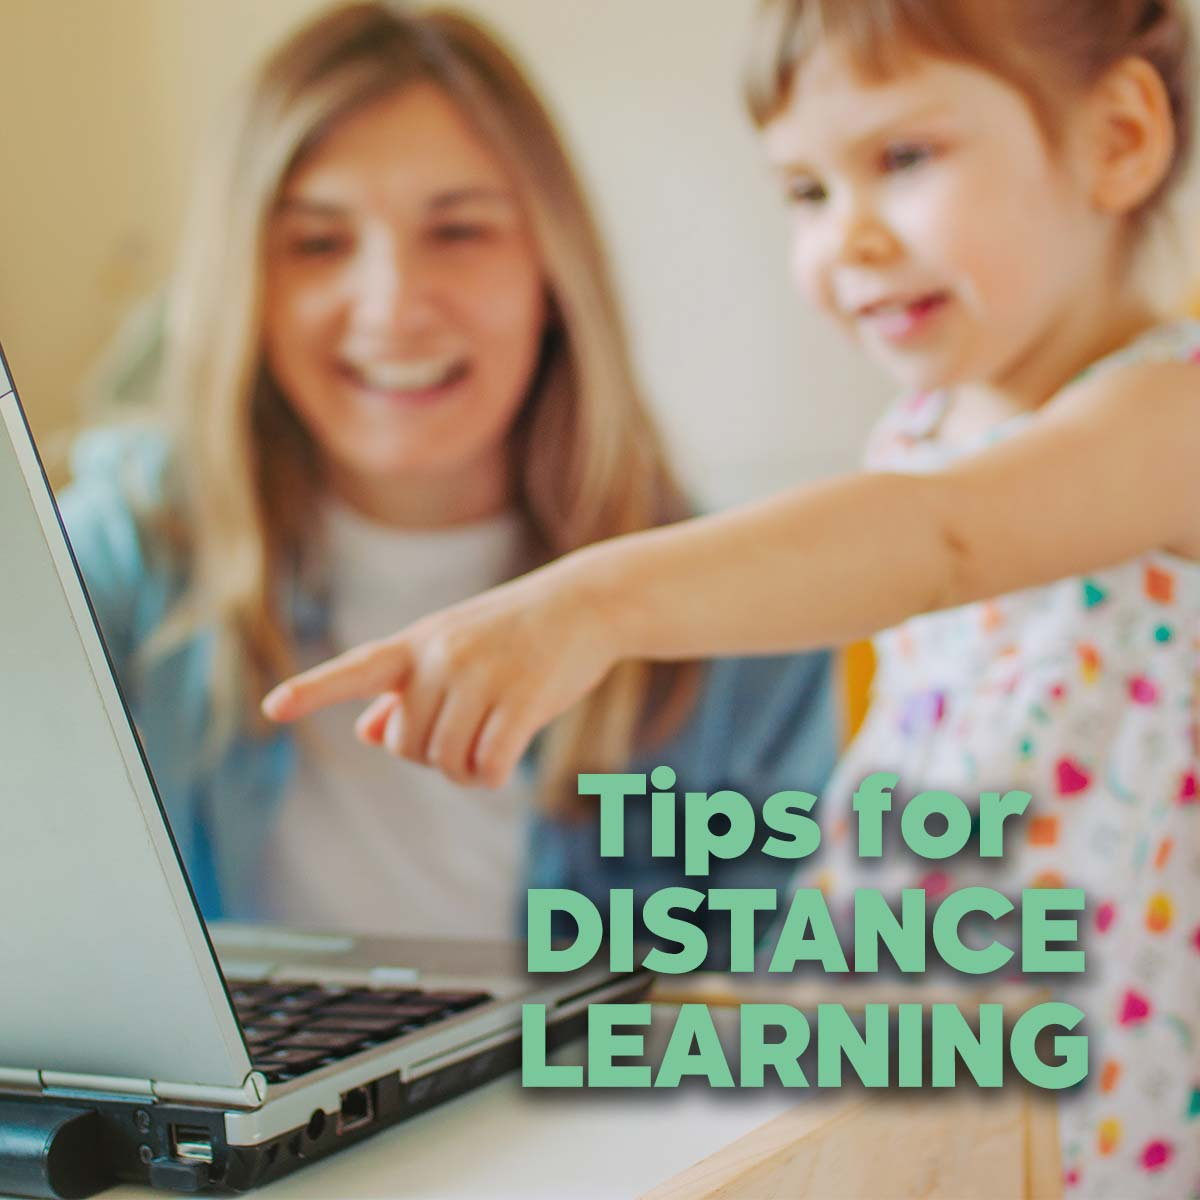 Tips for Distance Learning